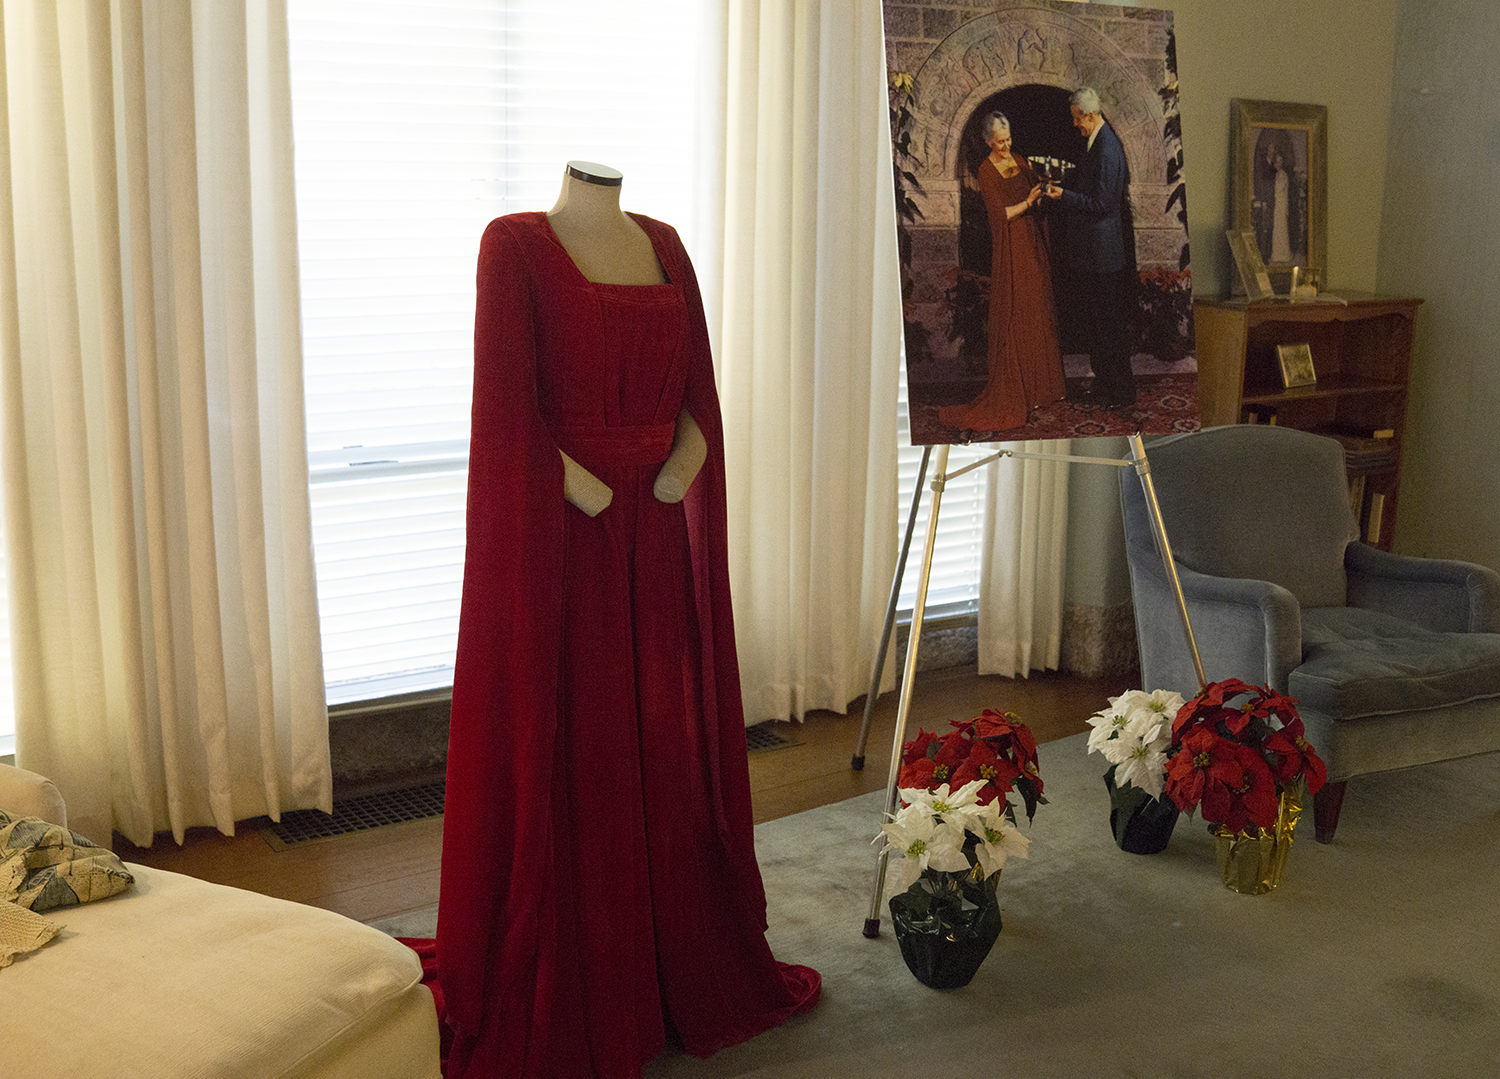 """Figure 21:The """"Christmas in the Castle"""" tour includes Mildred Pitcairn's Christmas gown, which she wore annually at the Glencairn Christmas Sing over a period of many years. It was made from red velvet, and was probably designed for Mildred by her husband Raymond. Raymond designed a number of gowns for Mildred during their 55-year marriage."""